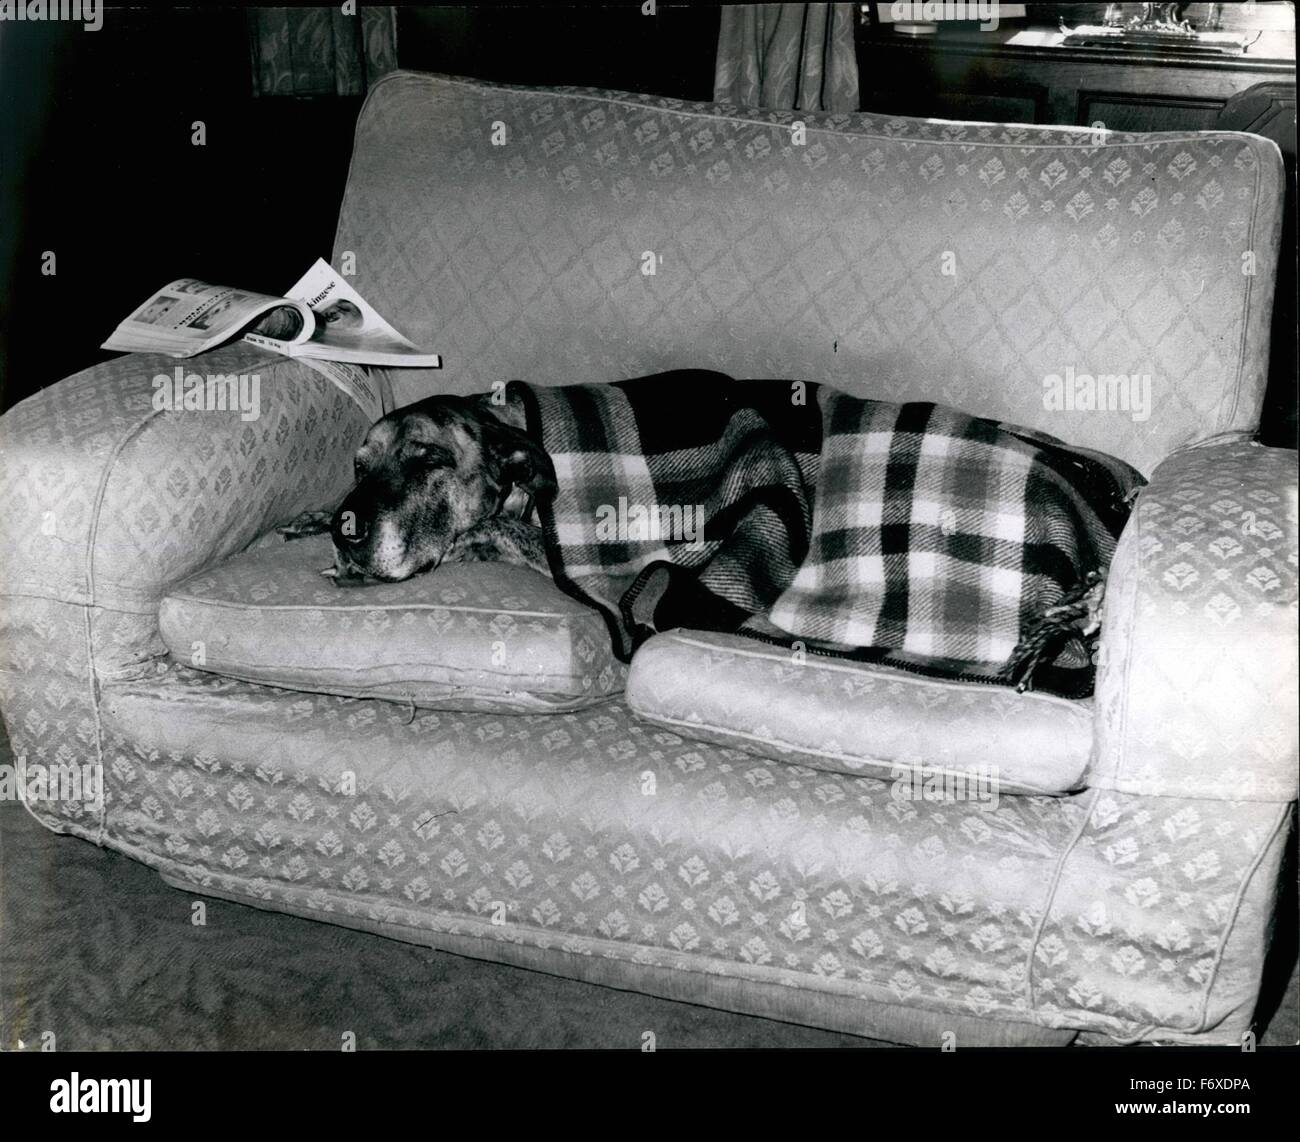 1962 - Goodnight: Canine filmstar juno has her own settees in each room of her Hertfordshire home. © Keystone - Stock Image